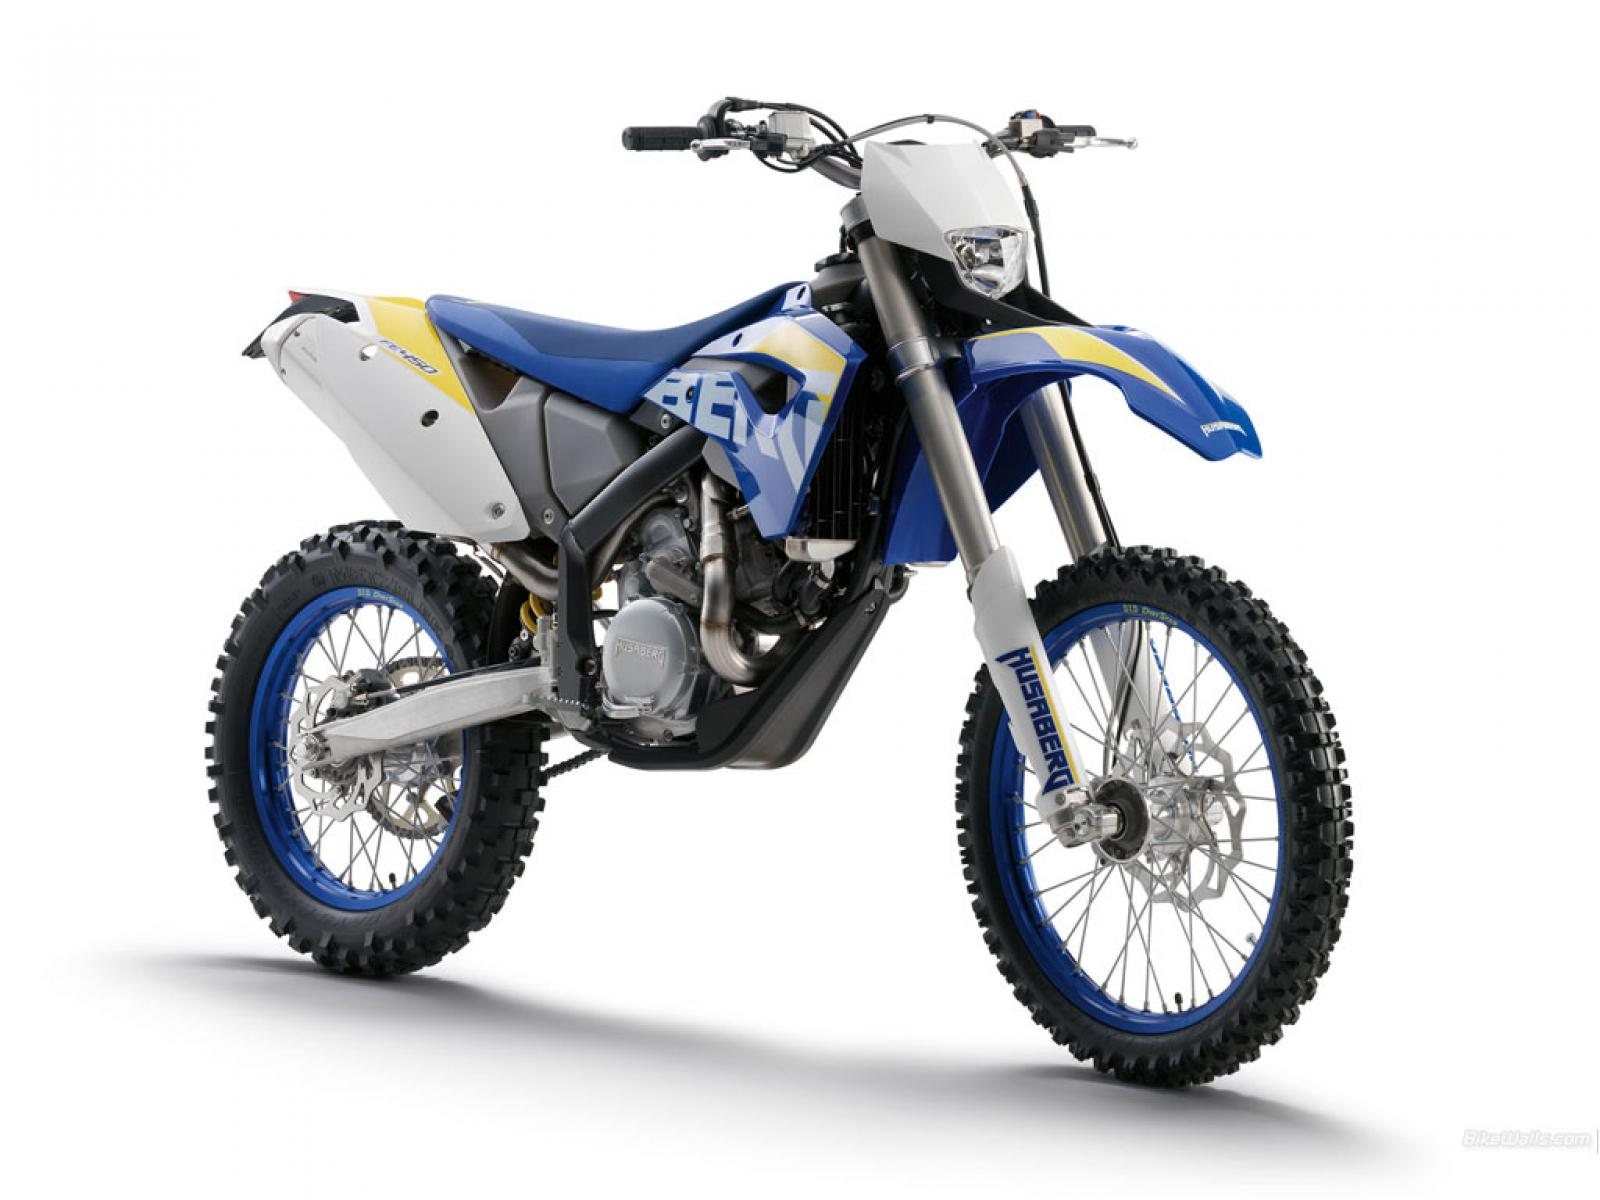 husaberg husaberg fs 450 e moto zombdrive com. Black Bedroom Furniture Sets. Home Design Ideas